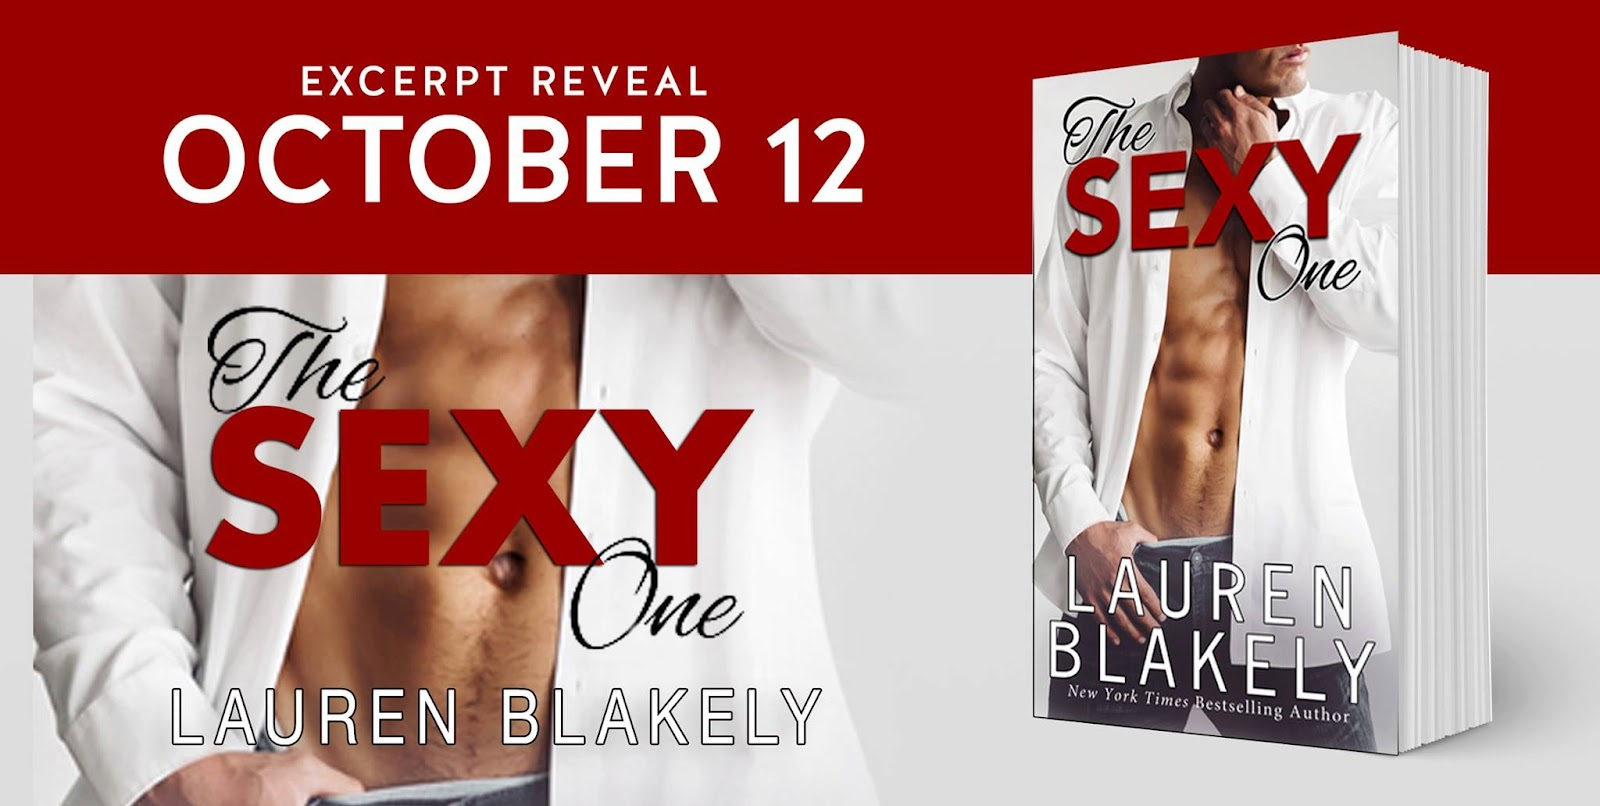 The sexy one excerpt reveal.jpg